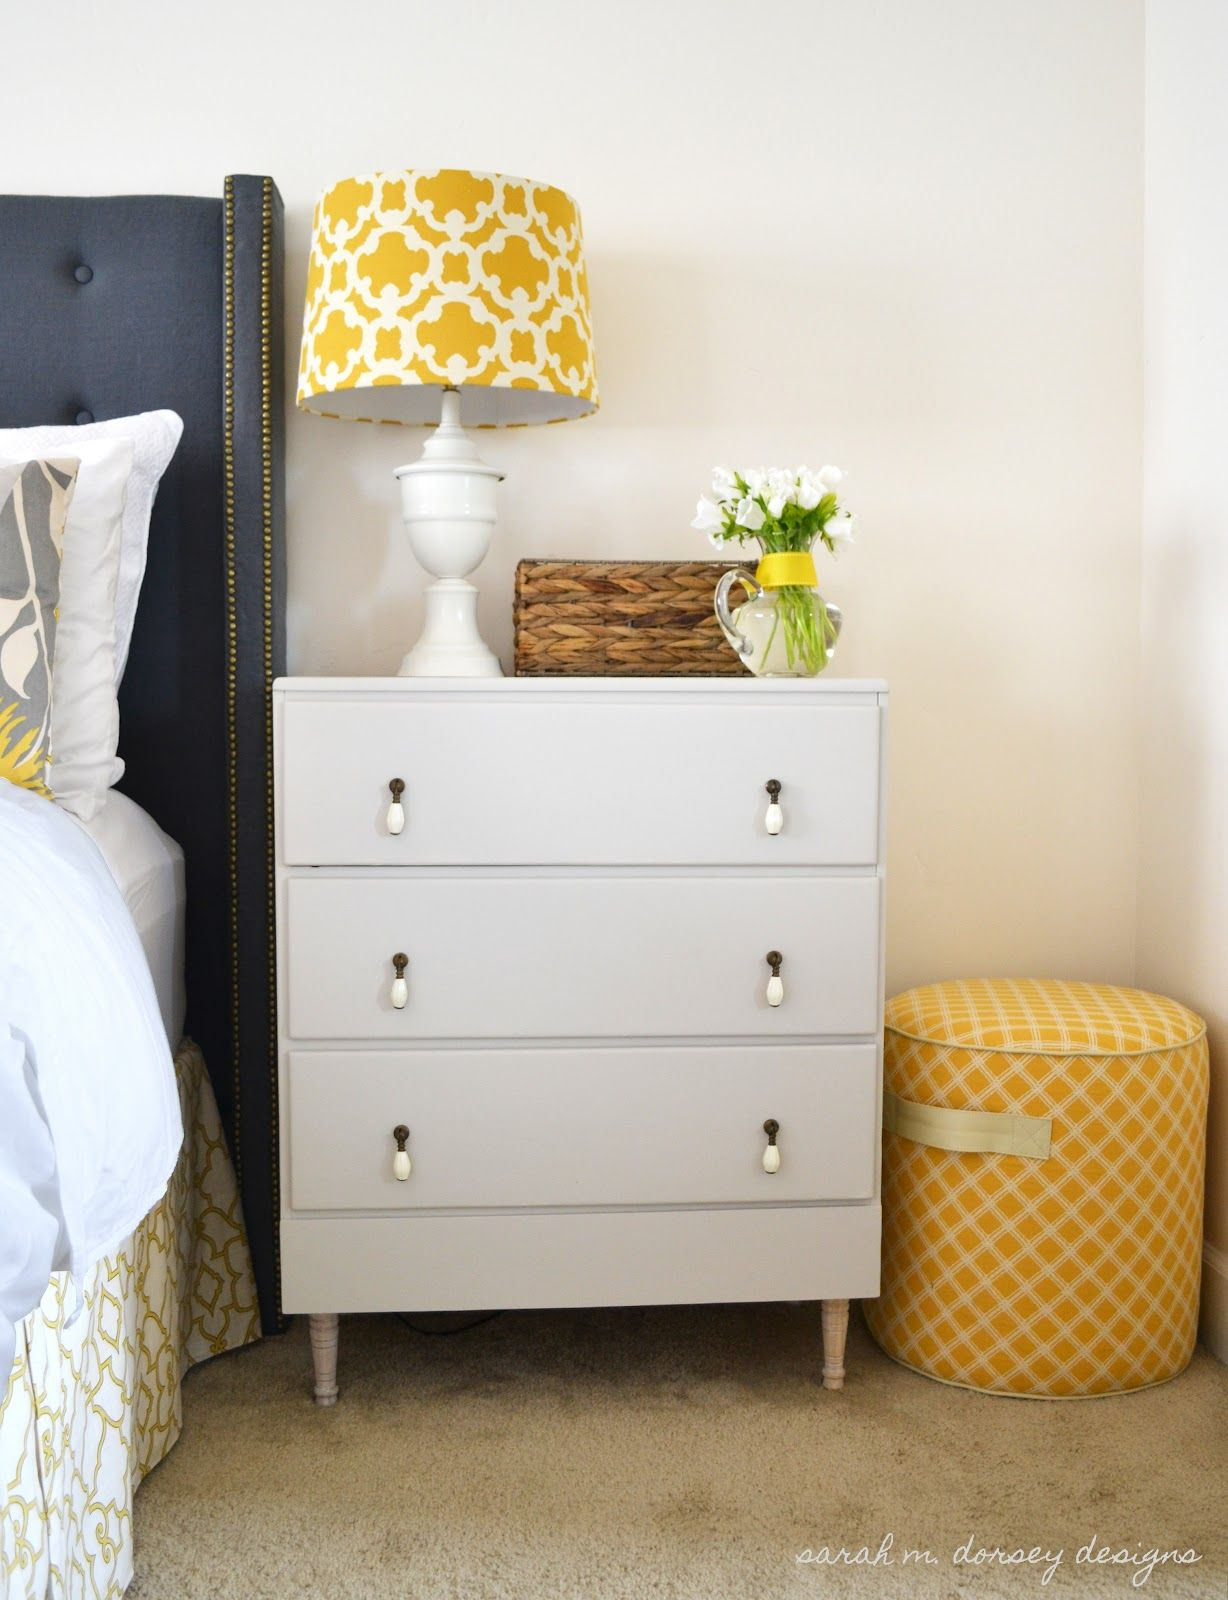 super pretty dresser re-design. would love a night stand like this one. maybe an ikea hack. via sarah m. dorsey designs